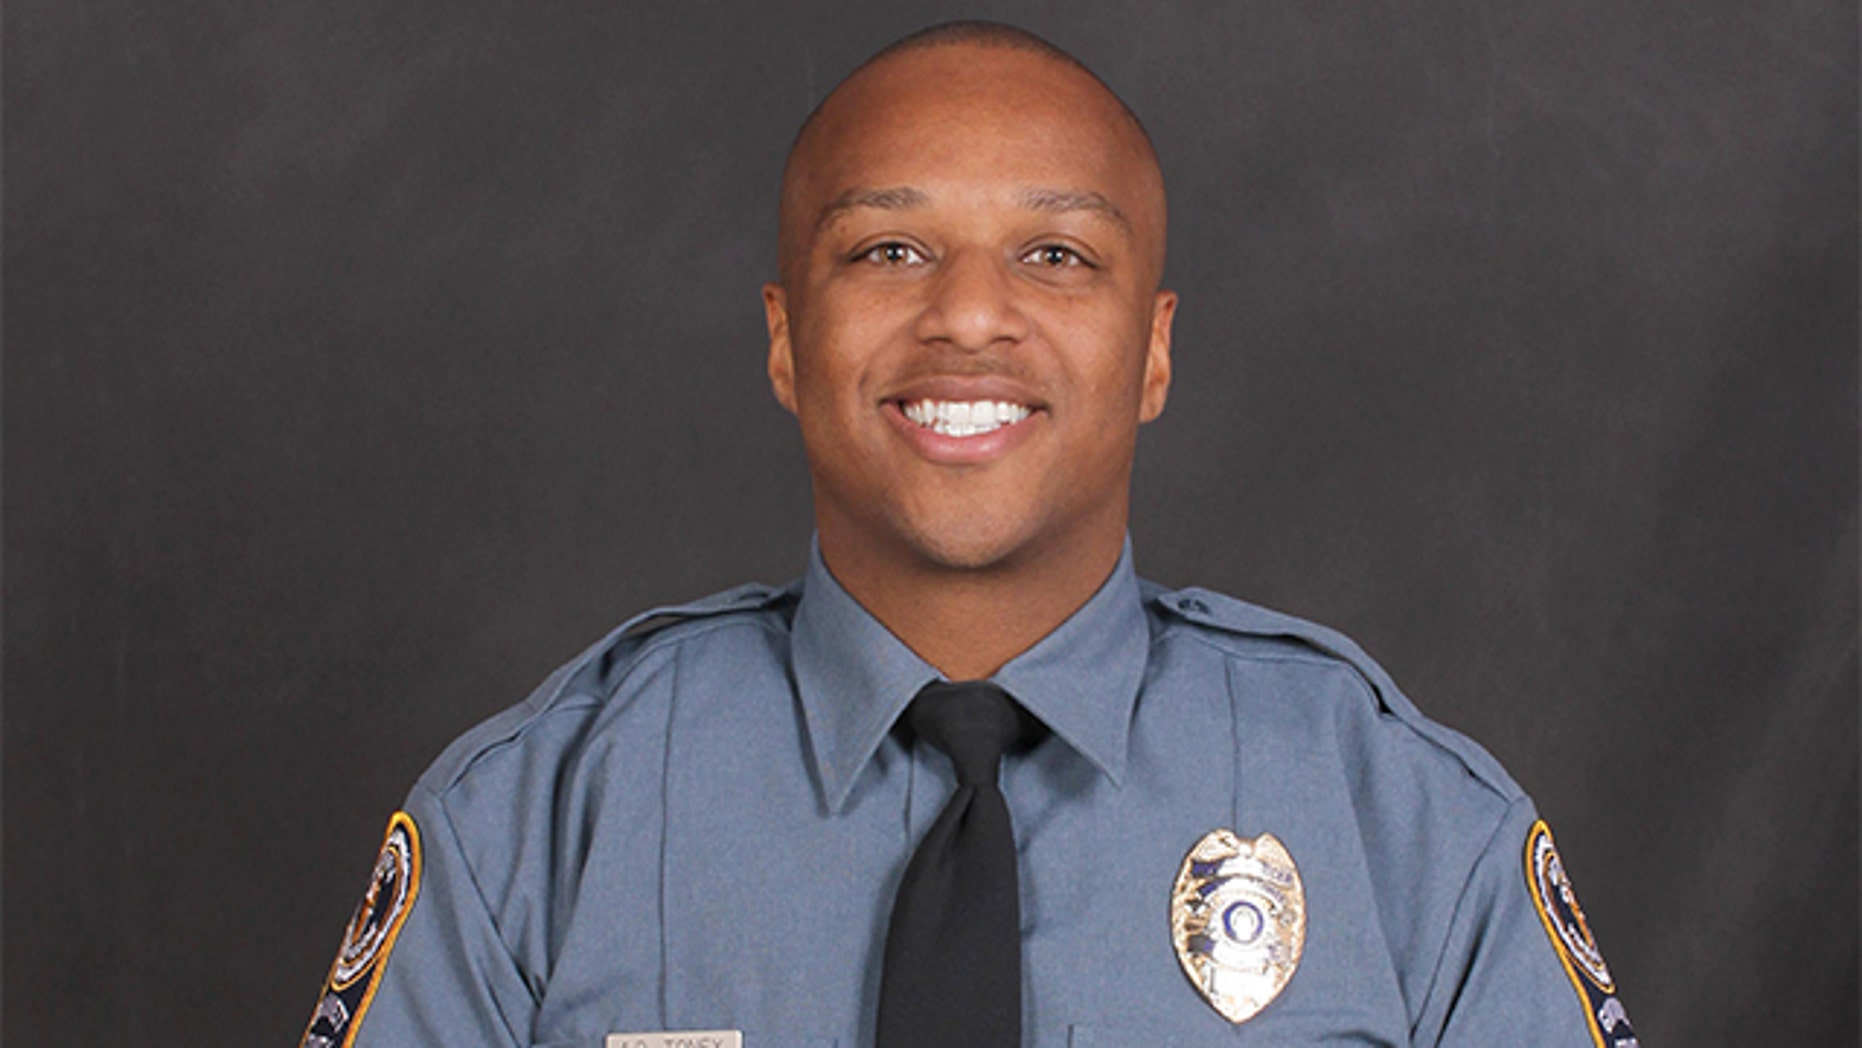 Police officer from SoCal killed in Atlanta